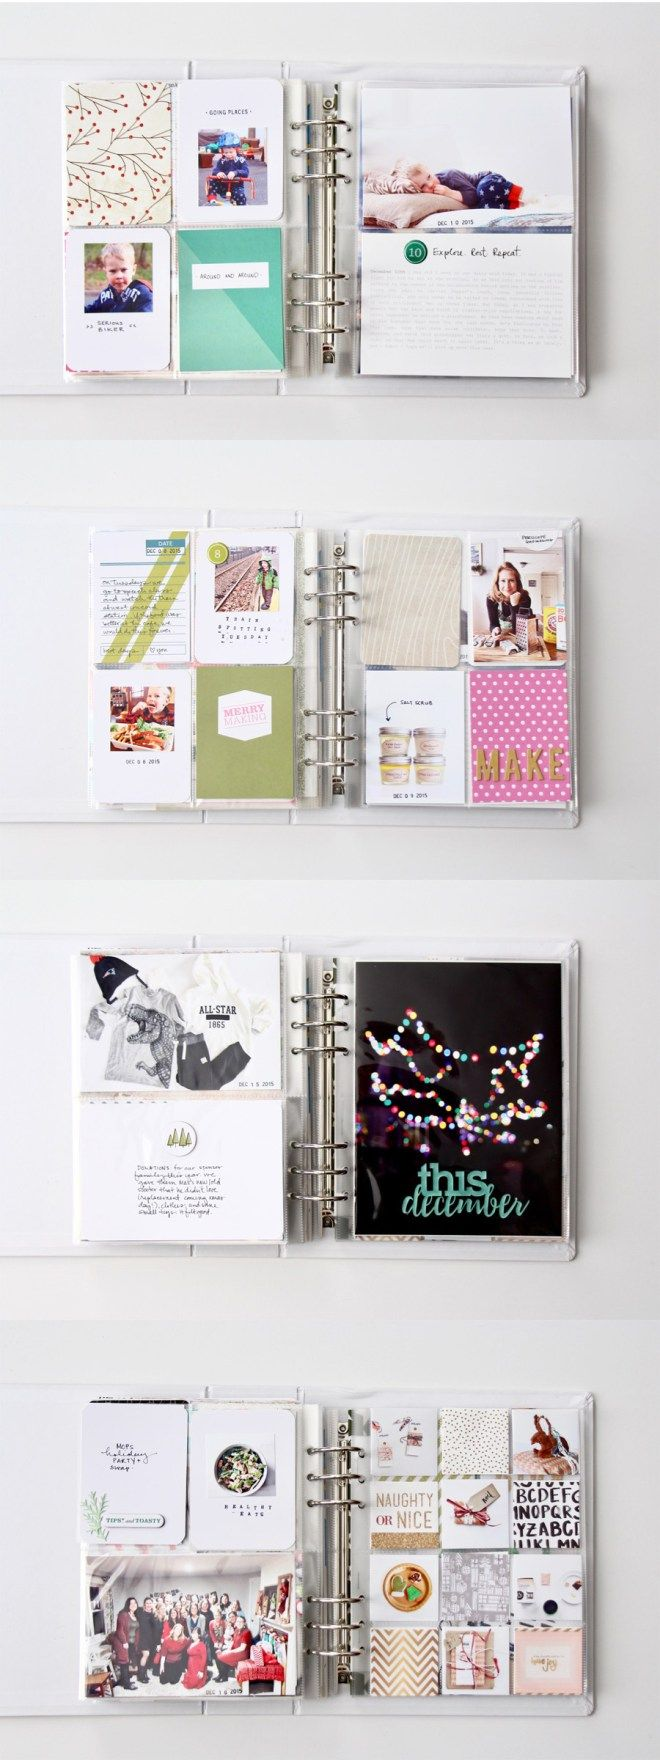 December Daily Album 2015 by Julie Love Gagen using Ali Edwards products